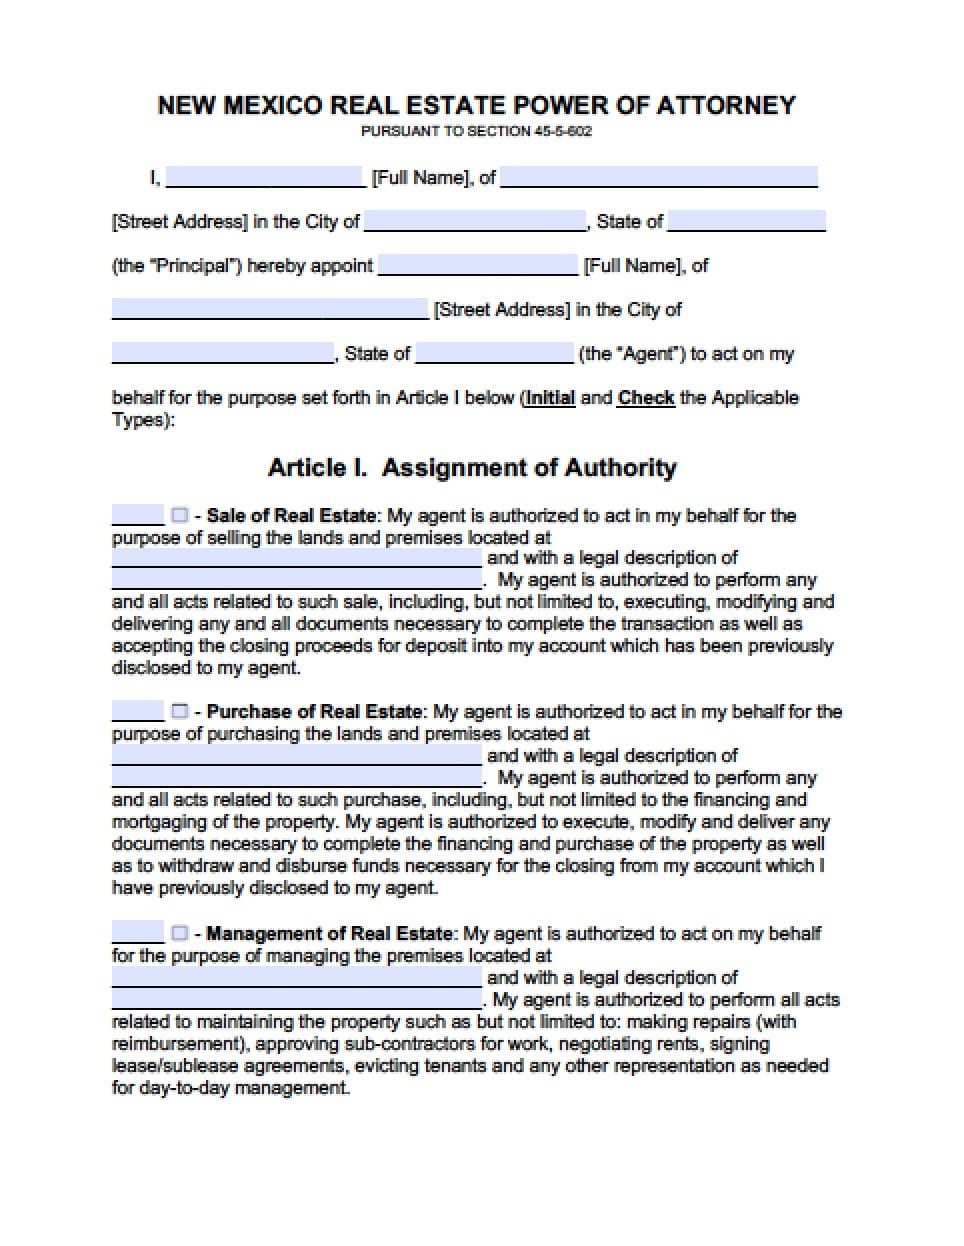 New Mexico General Financial Power of Attorney Form - Power of ...